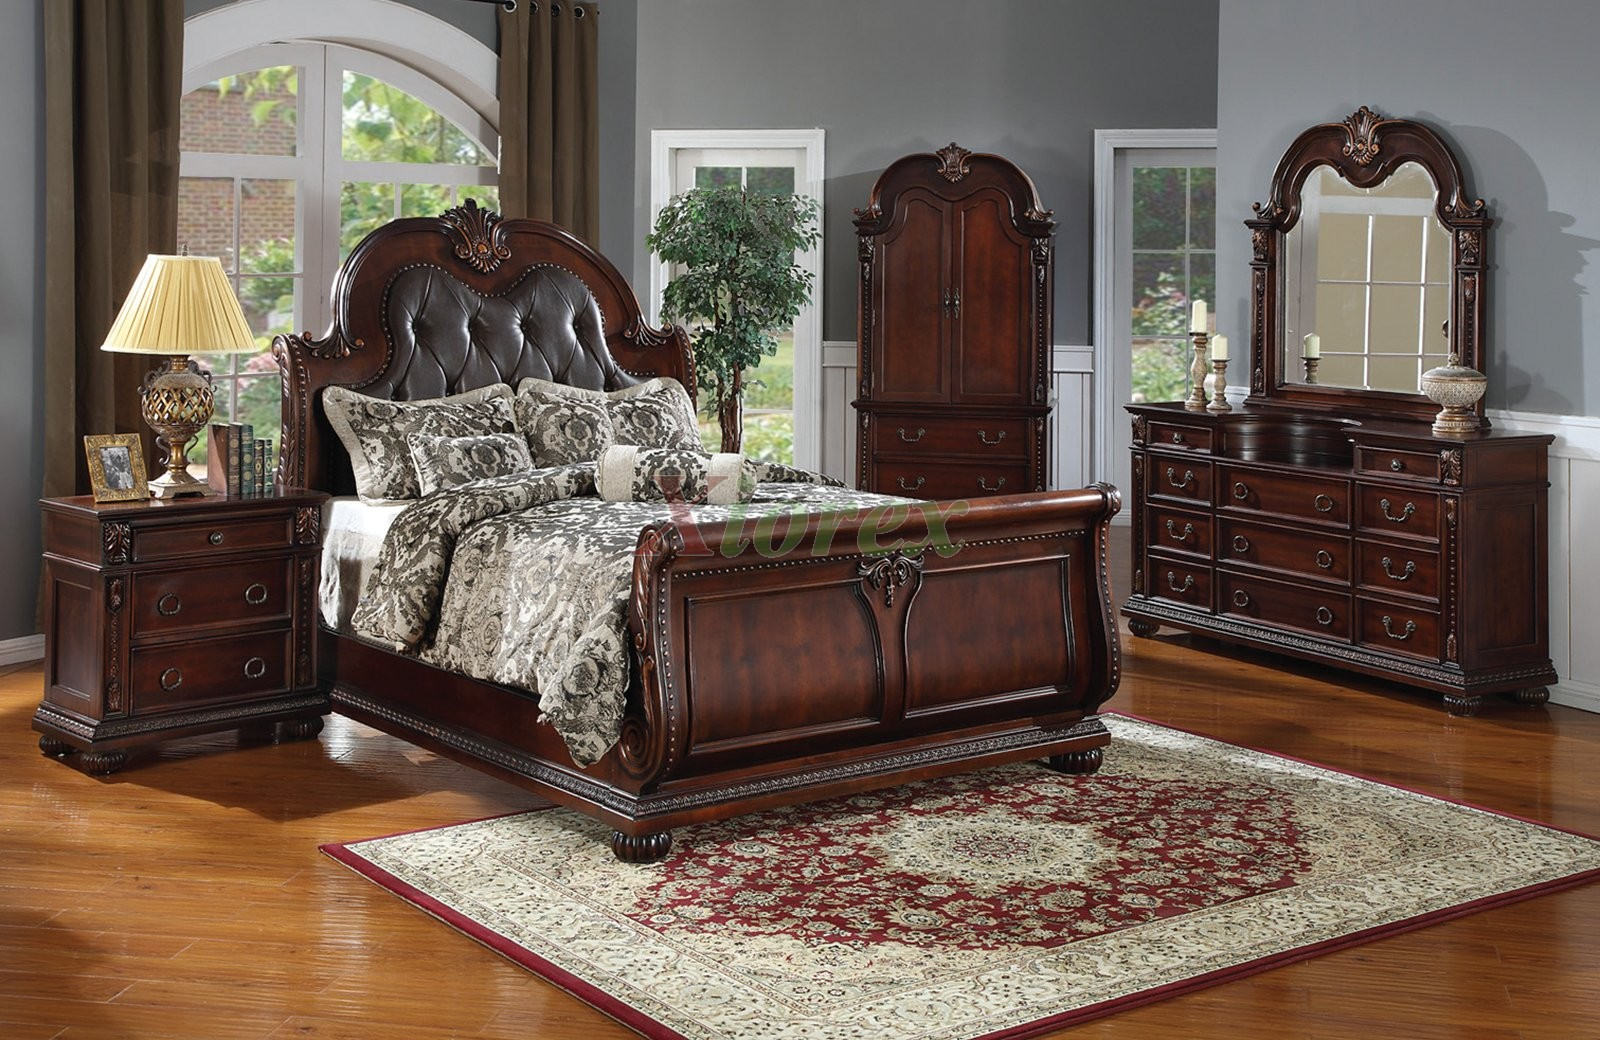 Lovely Sleigh Bedroom Furniture Set With Leather Headboard 119 | Xiorex